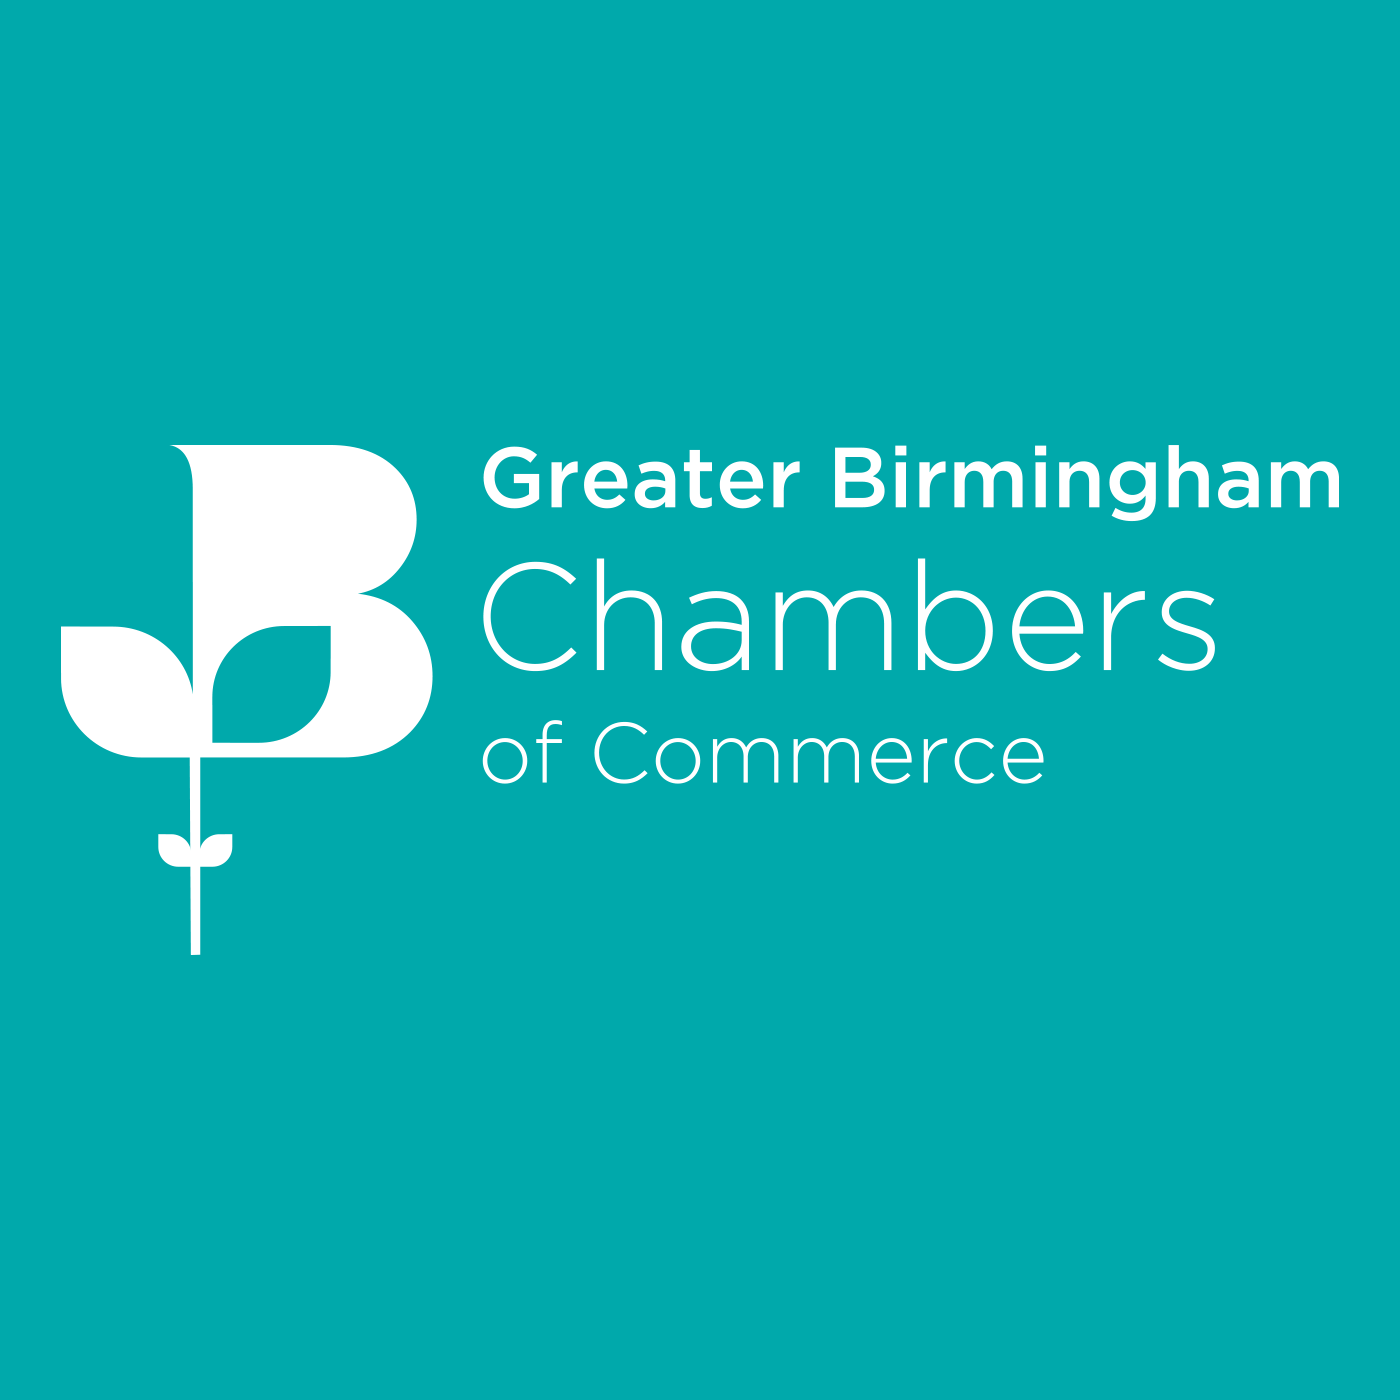 The Chamber of Commerce in Greater Birmingham